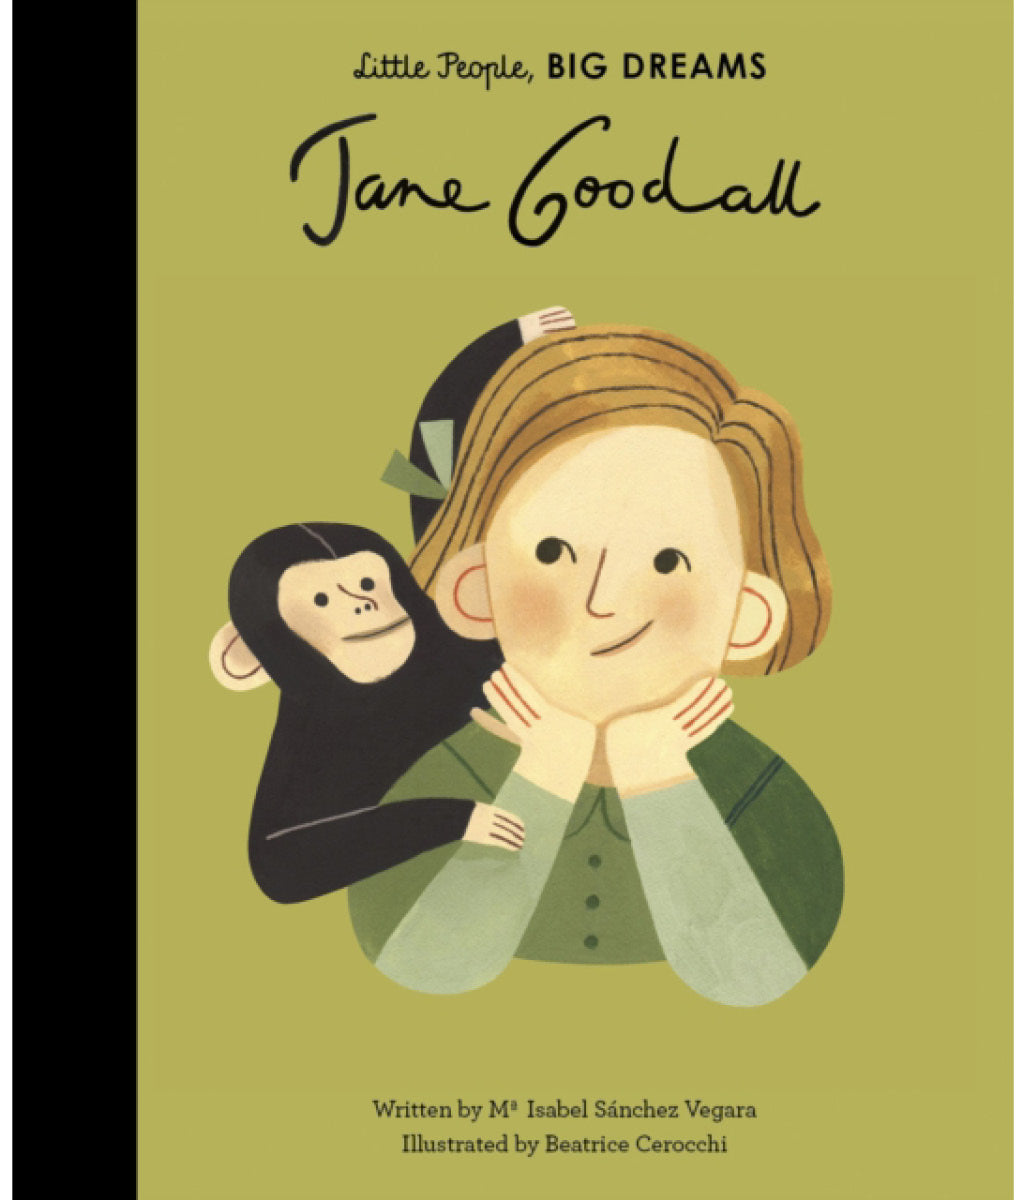 Jane Goodall by Maria Isabel Sanchez Vegara